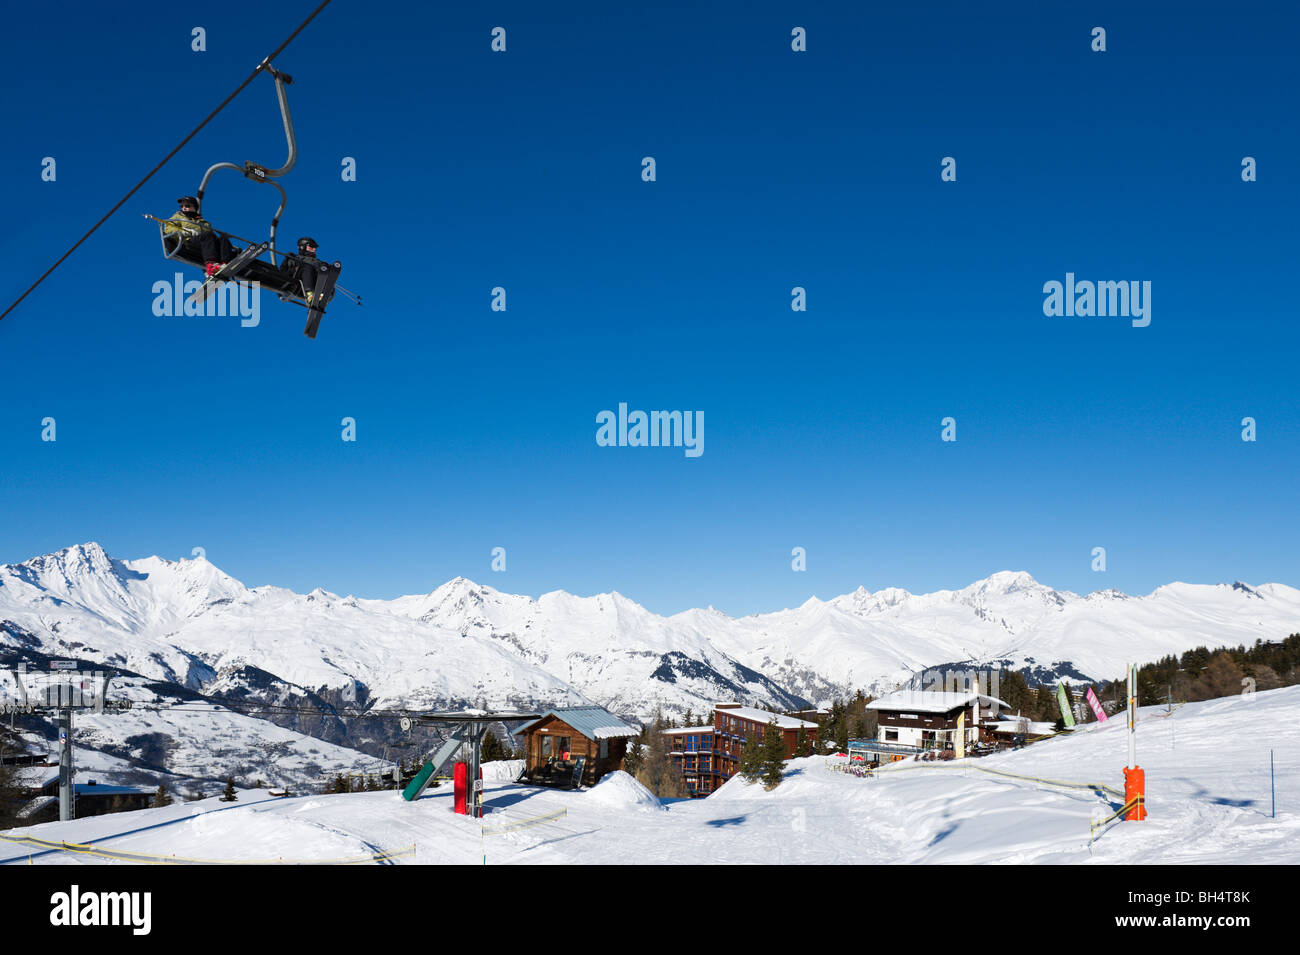 The Charmettoger chair lift near to the resort centre, Arc 1800, Les Arcs, Tarentaise, Savoie, France - Stock Image